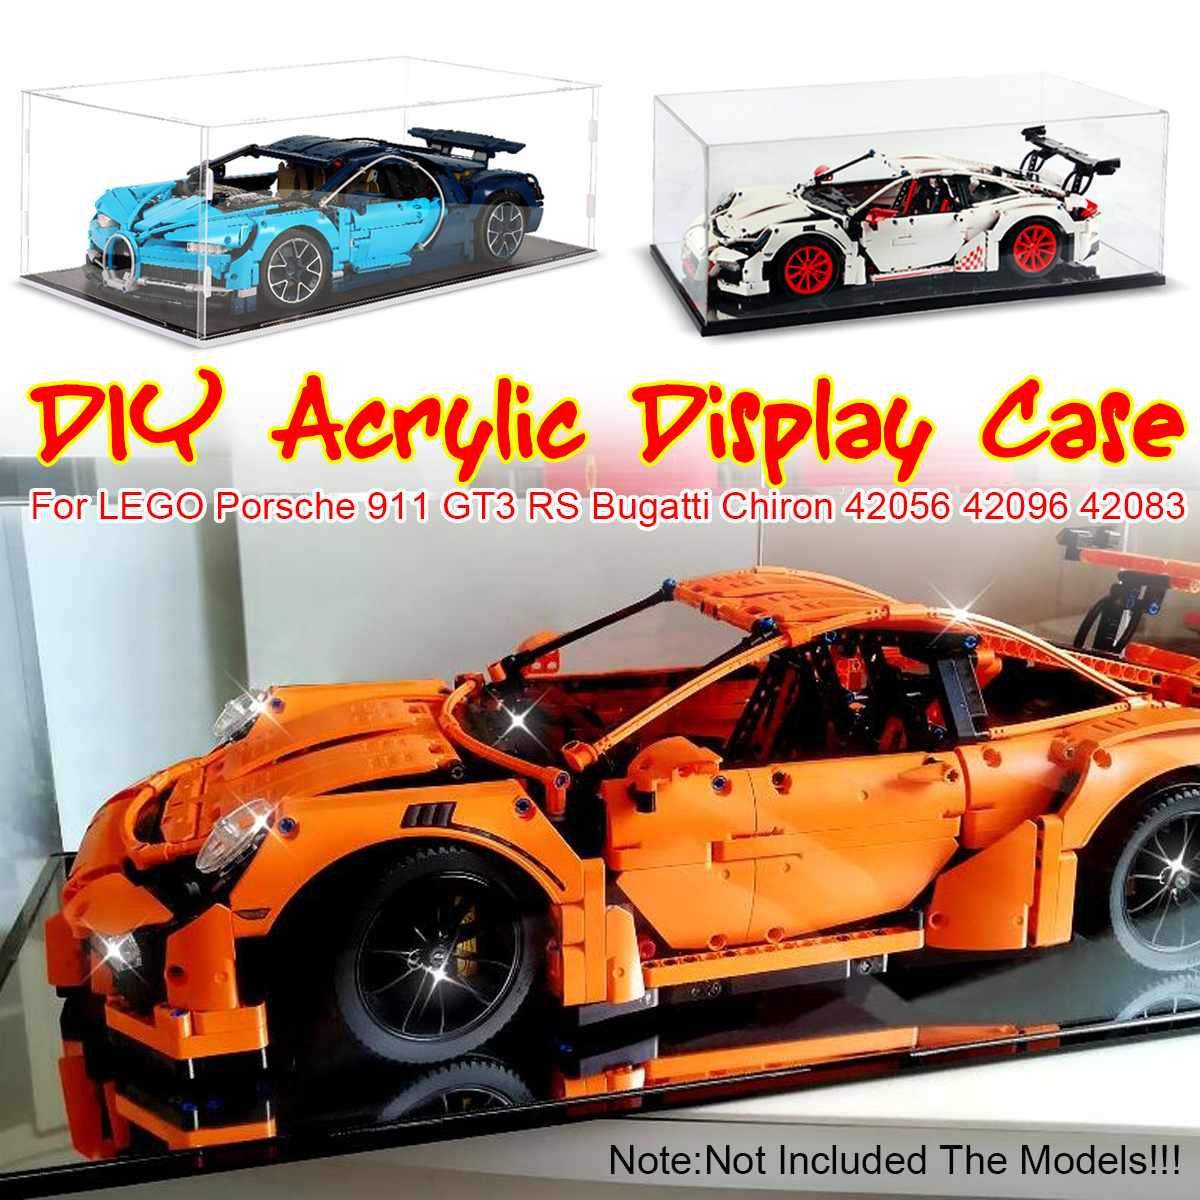 Acrylic Display Case for Lego 42056 for Bugatti Chiron for Porsche 911 GT3 <font><b>RS</b></font> Technic Series <font><b>Toy</b></font> Bricks ( Model not Included) image